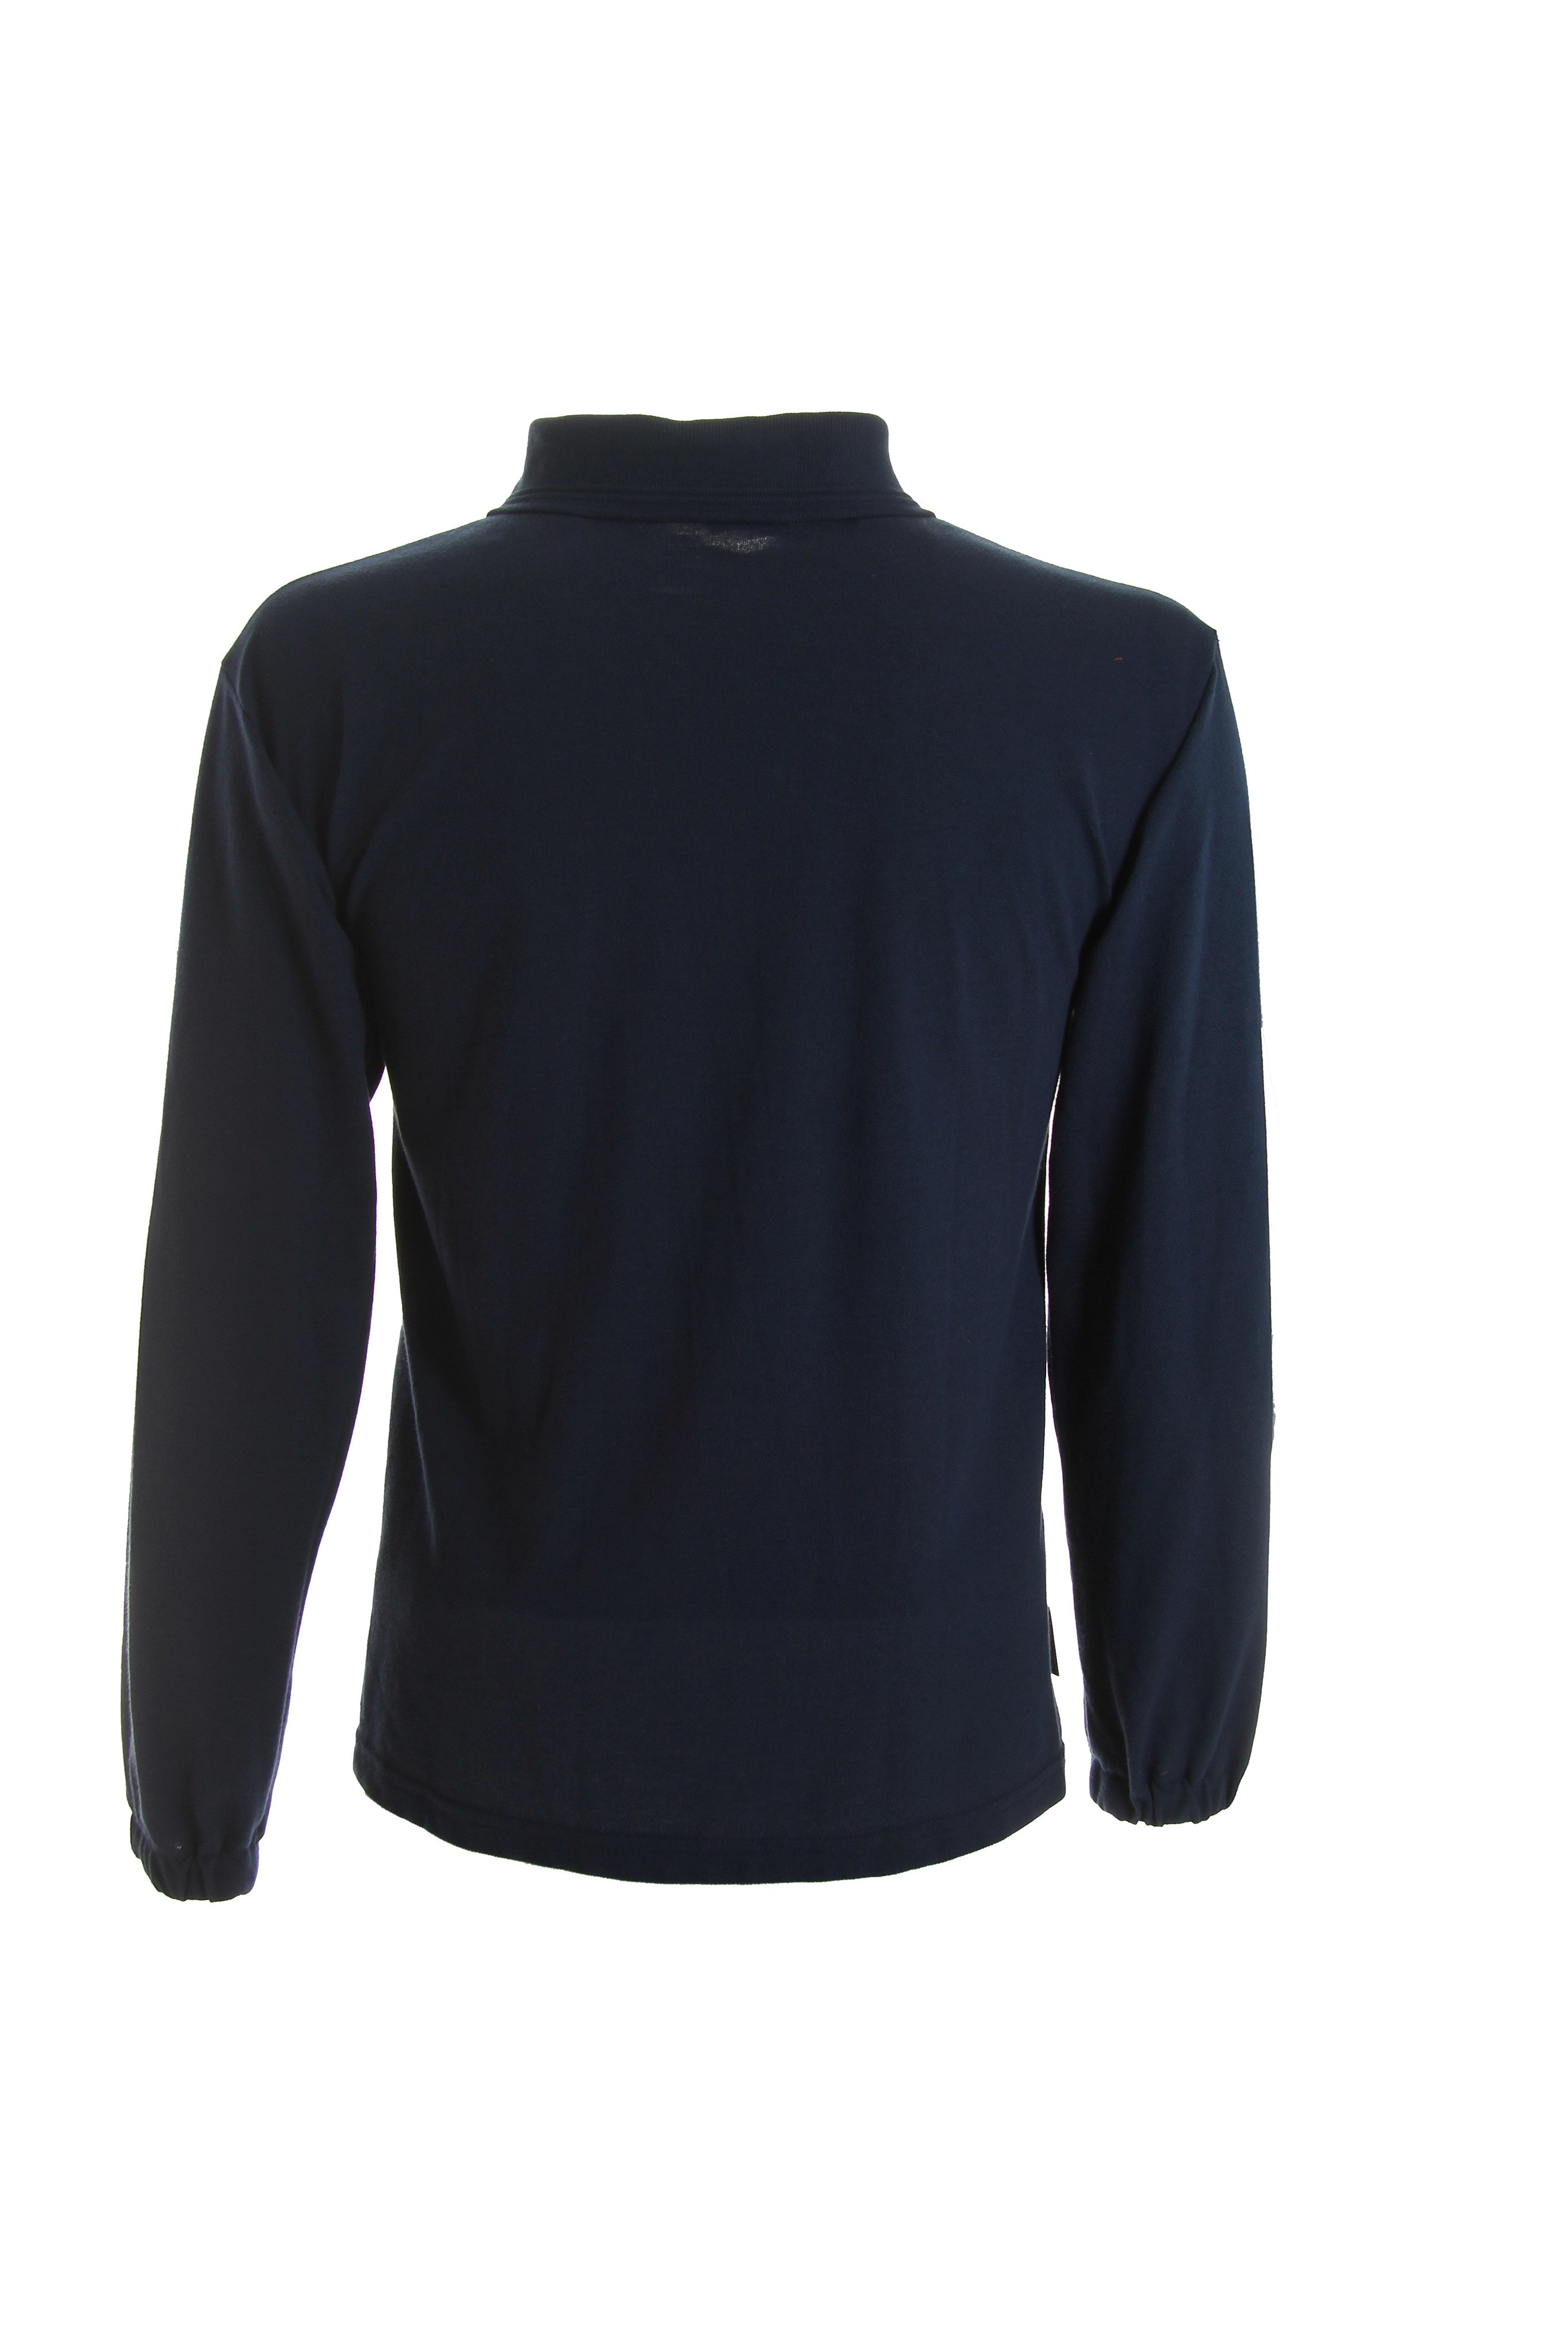 MULTINORM Langarm-Polo-Shirt Etna+